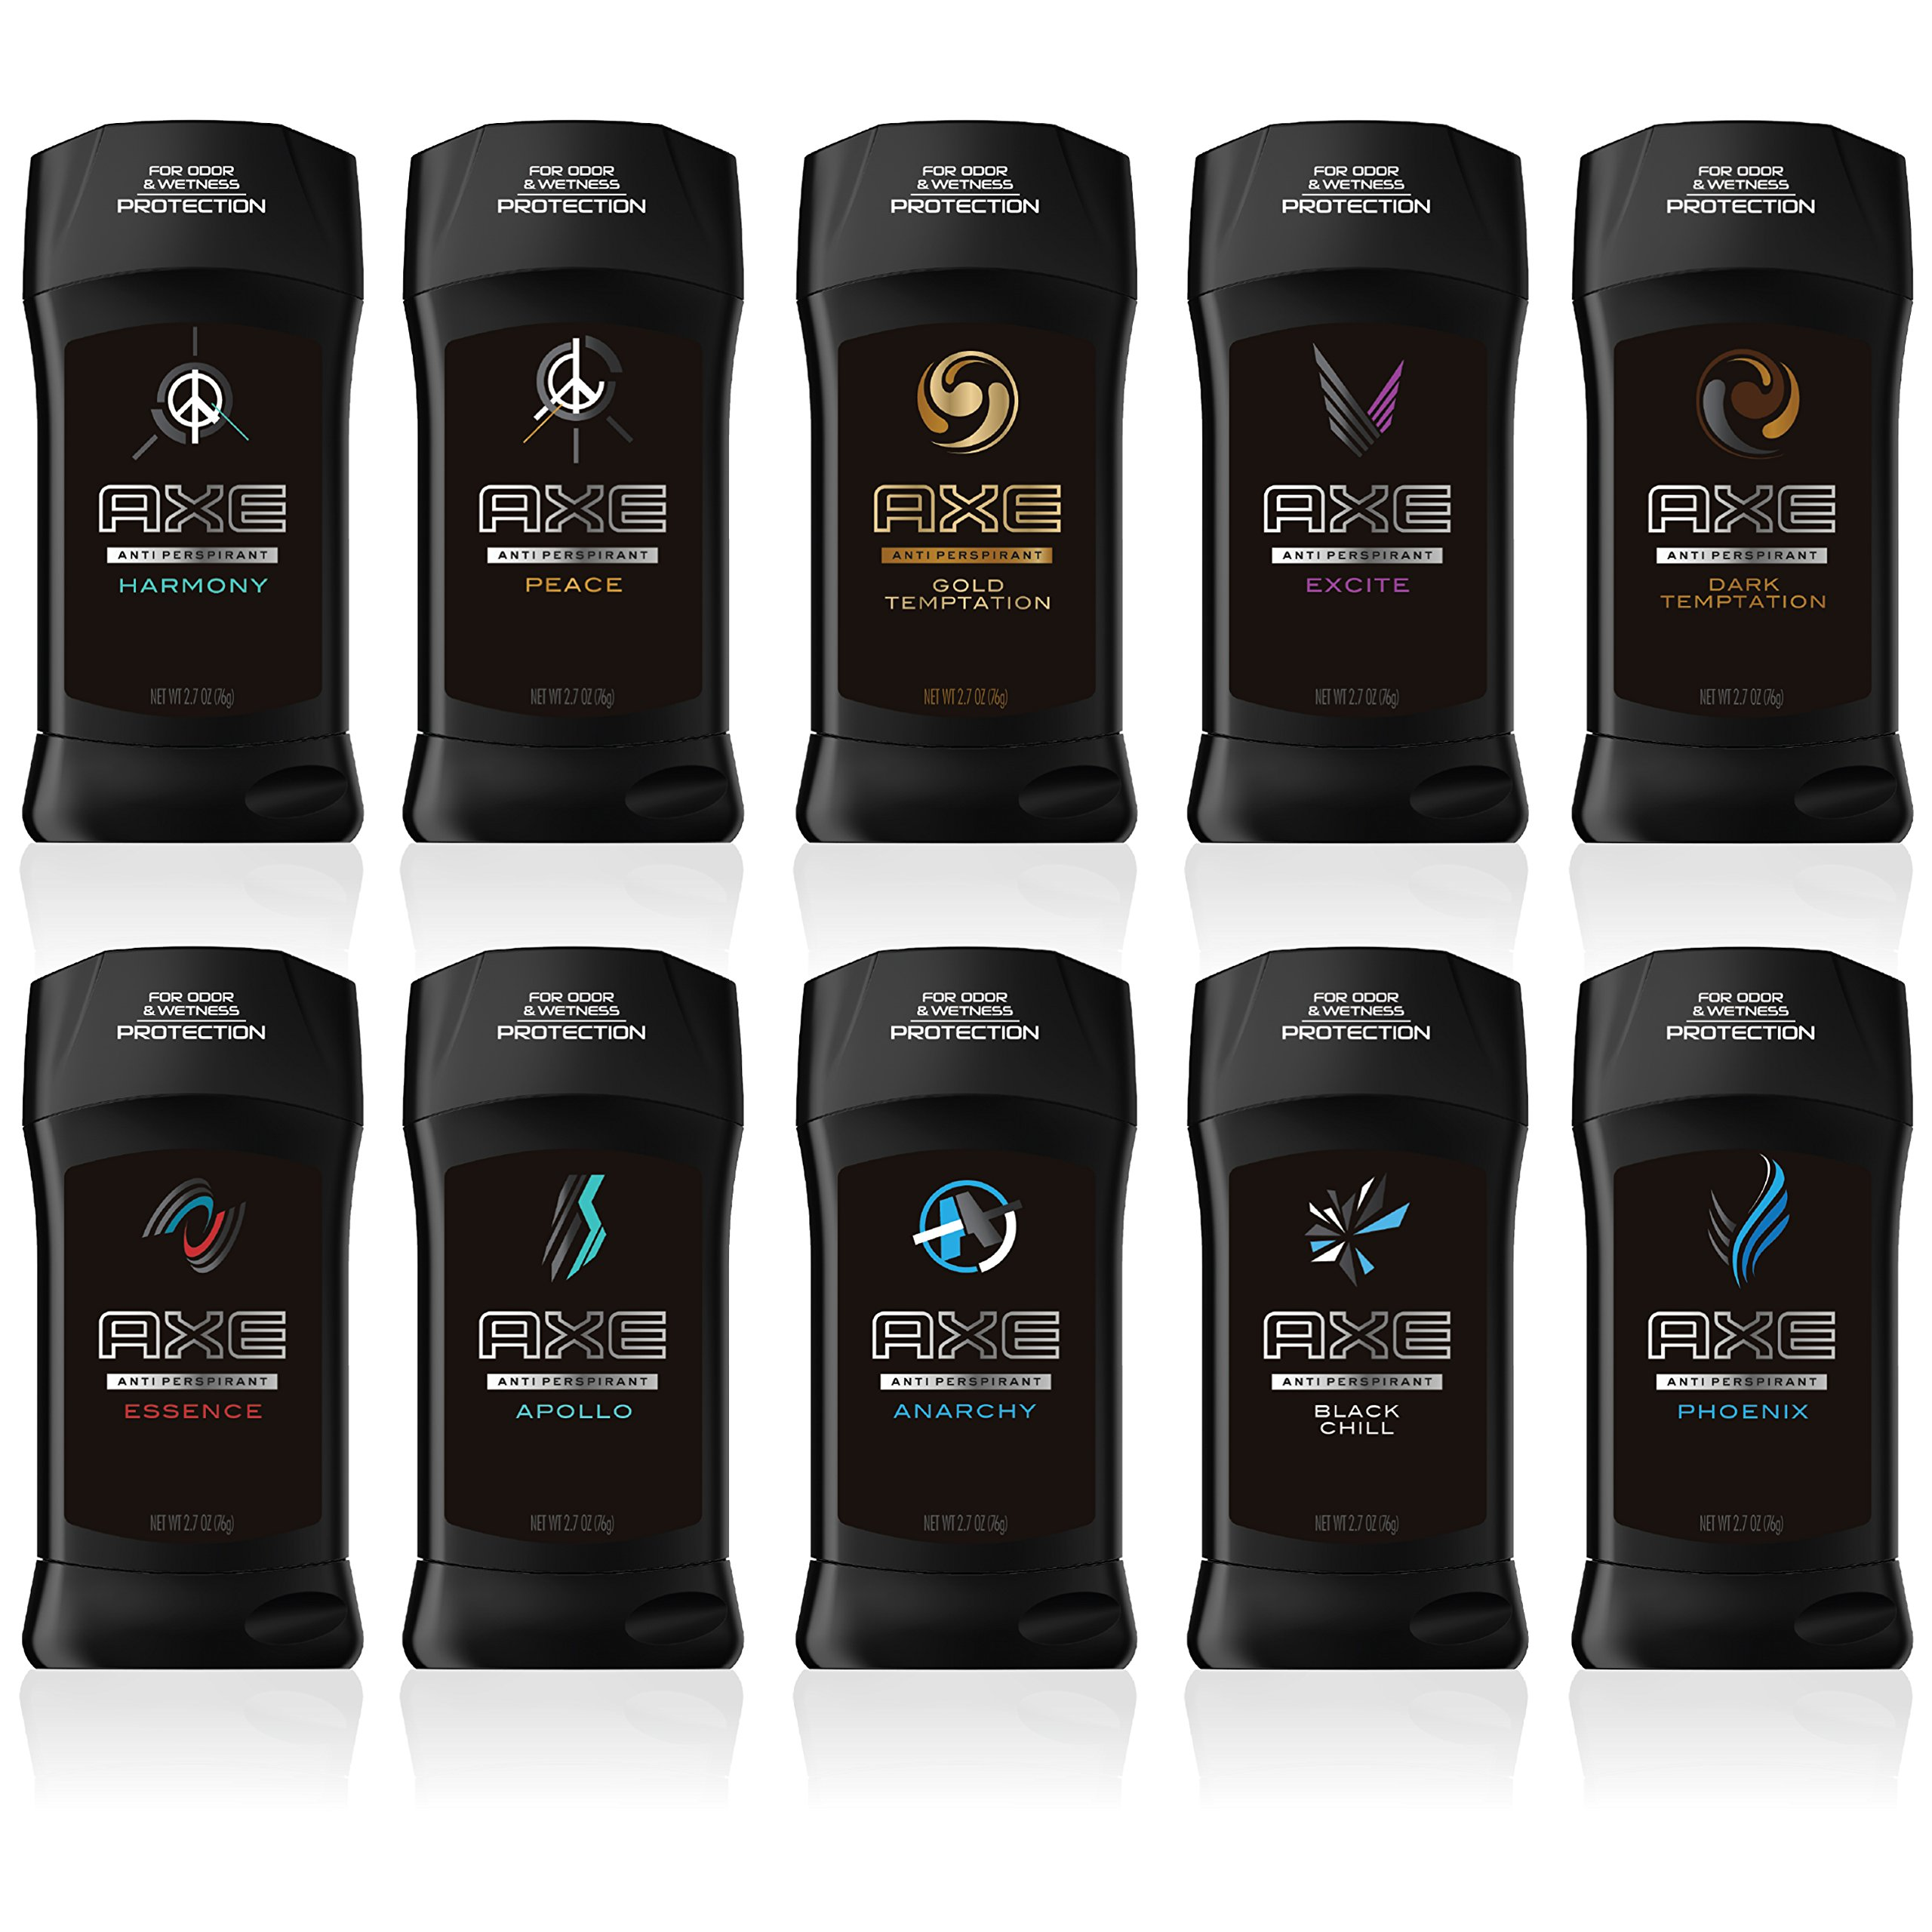 AXE Antiperspirant Deodorant Stick for Men, Excite, 2.7 Ounce (Pack of 6) by AXE (Image #5)